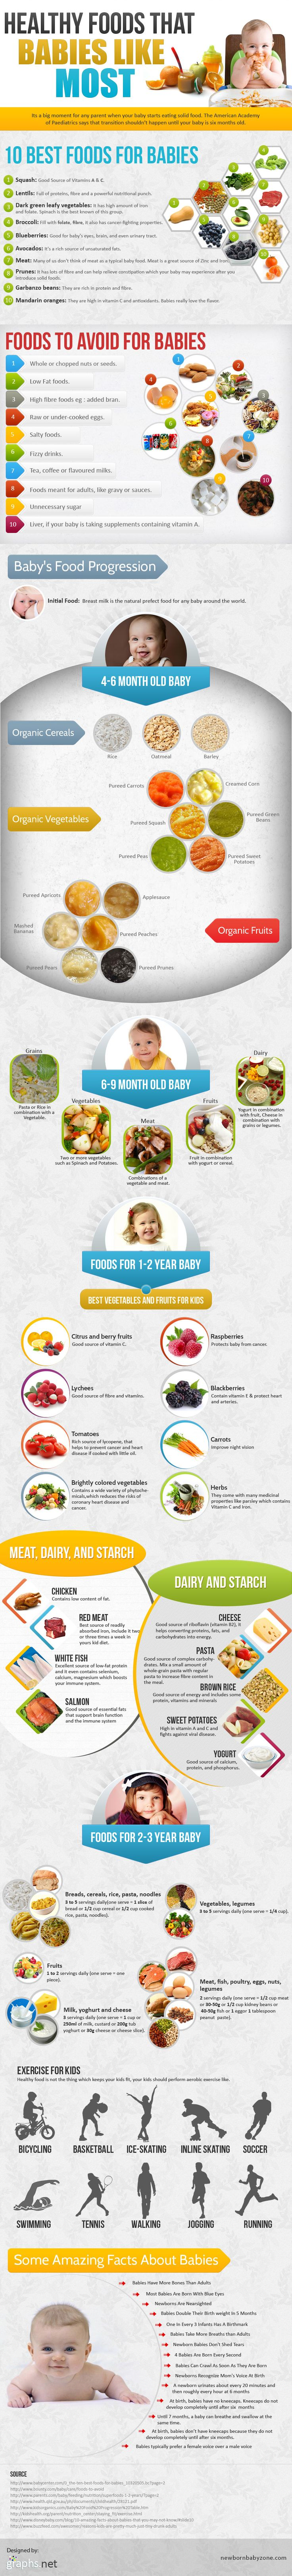 Foods That Babies Like Most